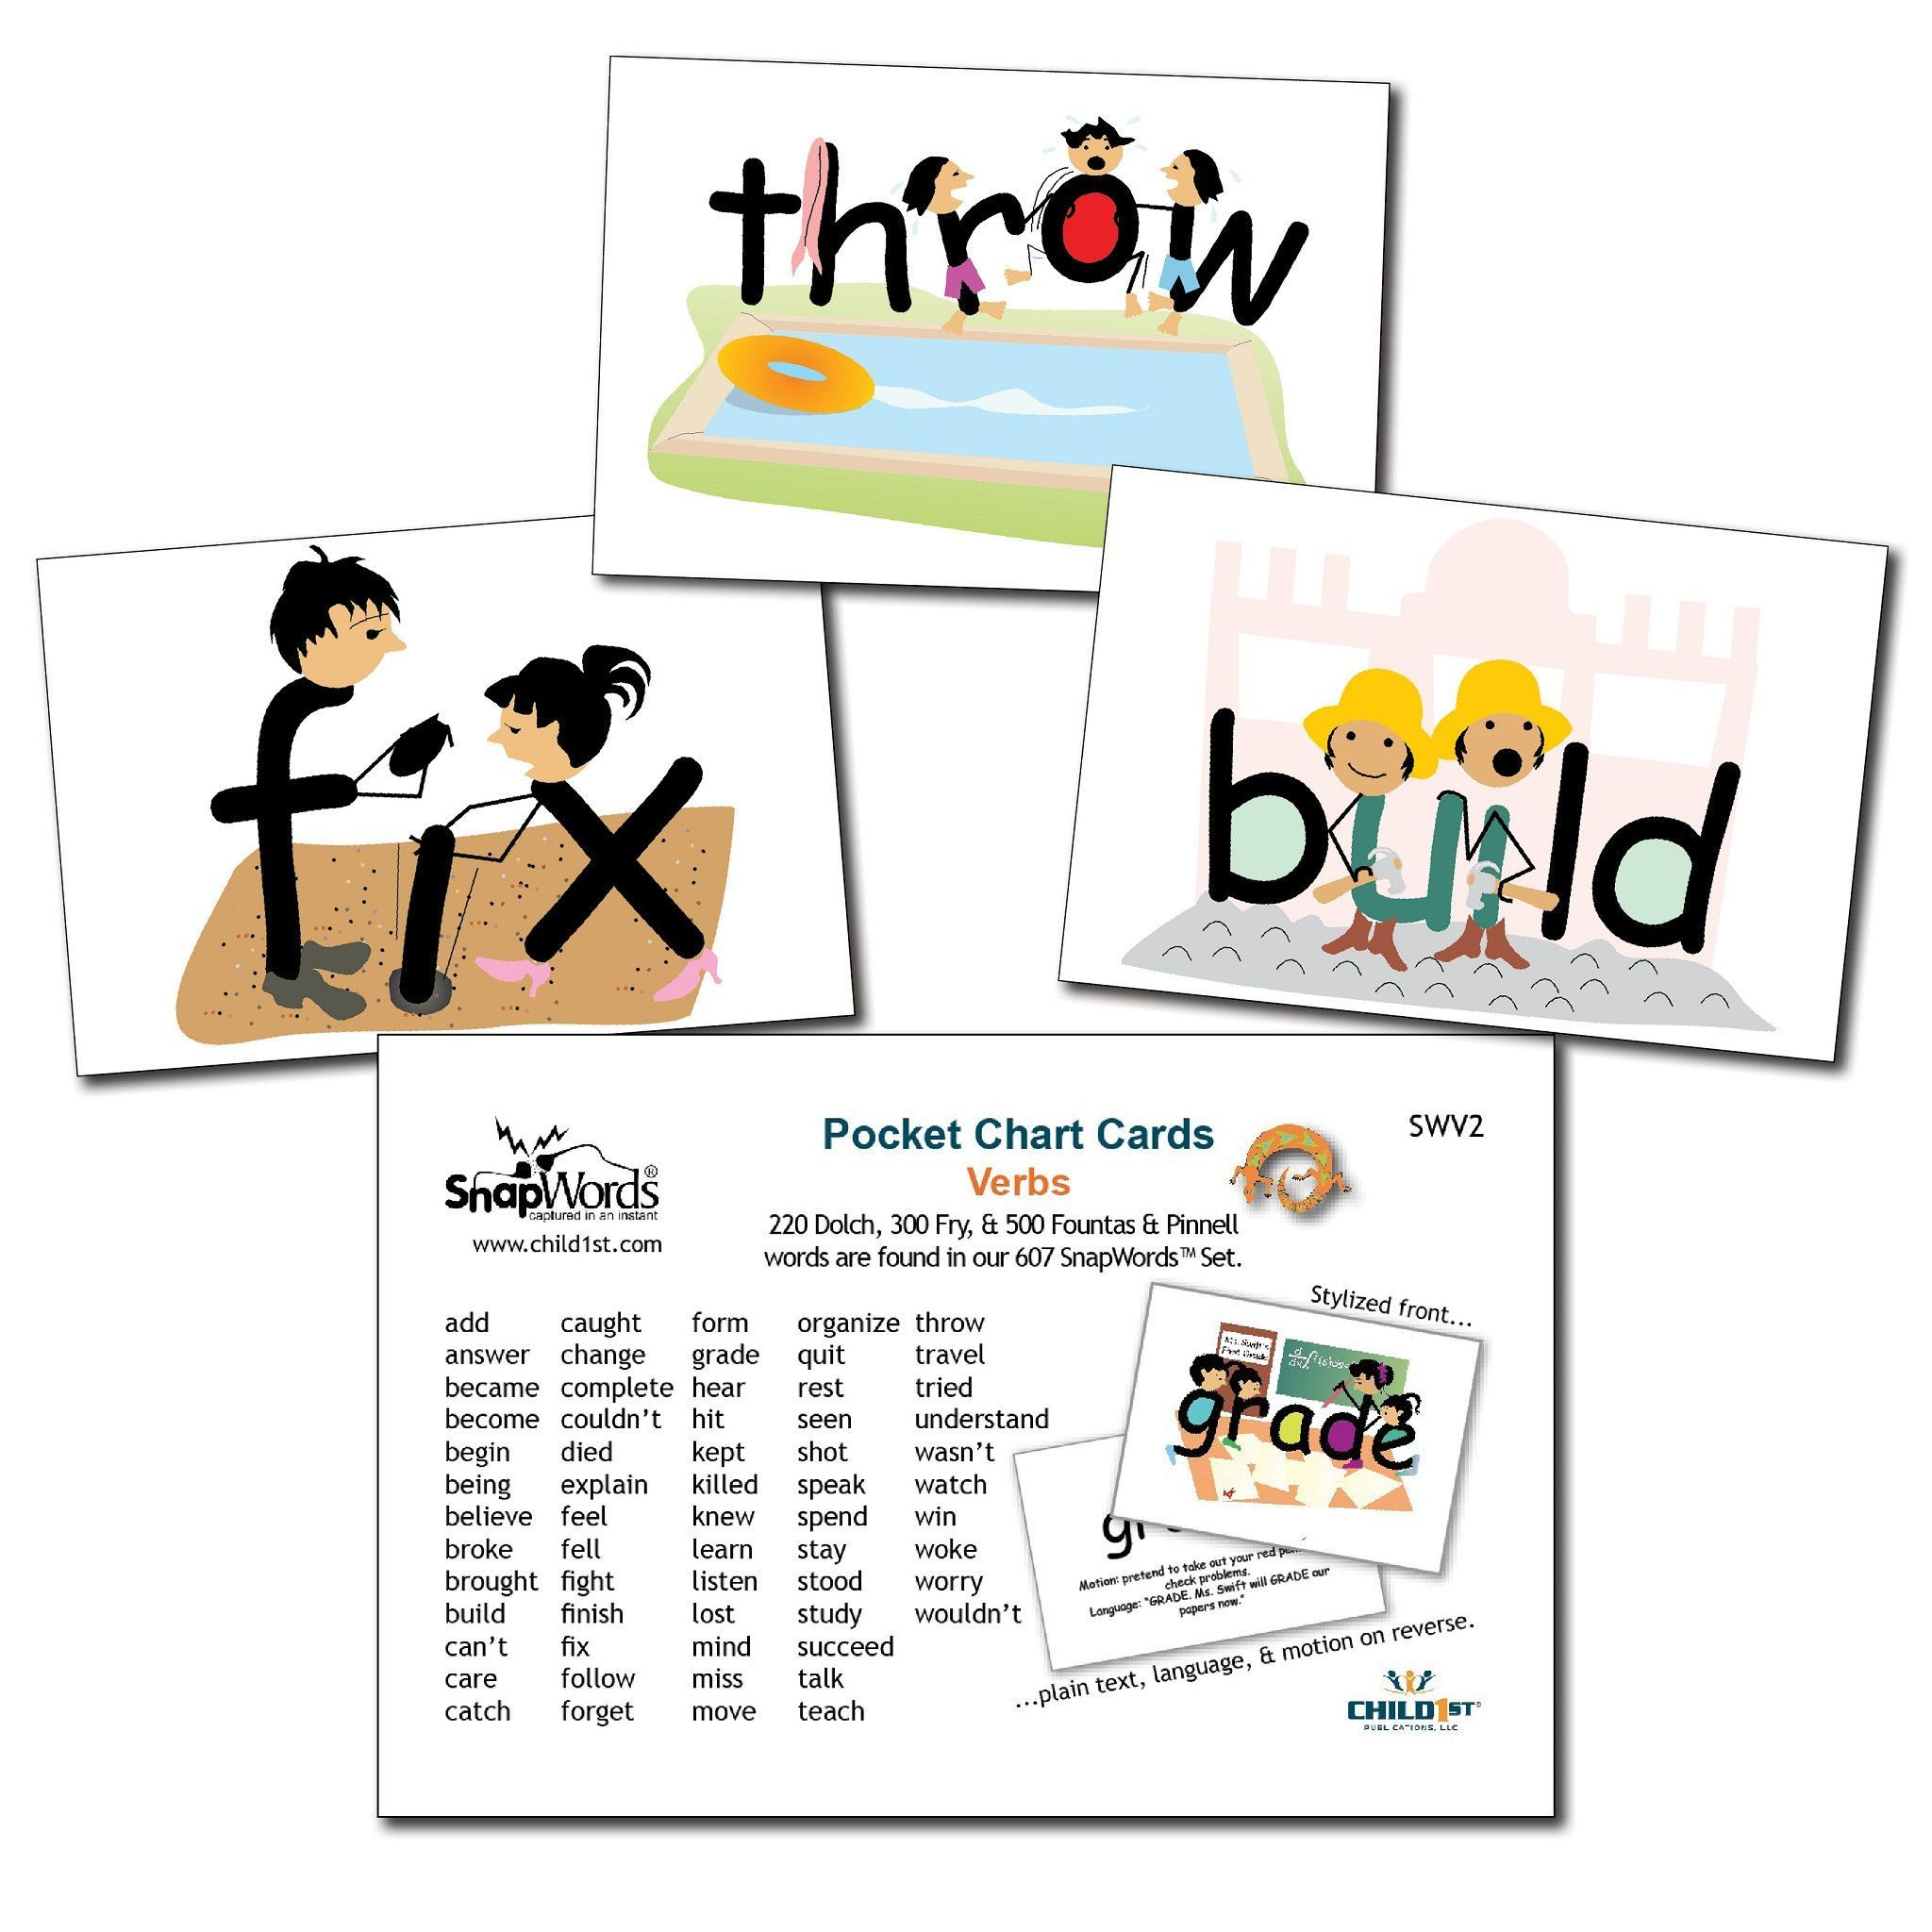 Bilingual dolphin counting card 6 clipart etc - Snapwords Verbs Pocket Chart Cards